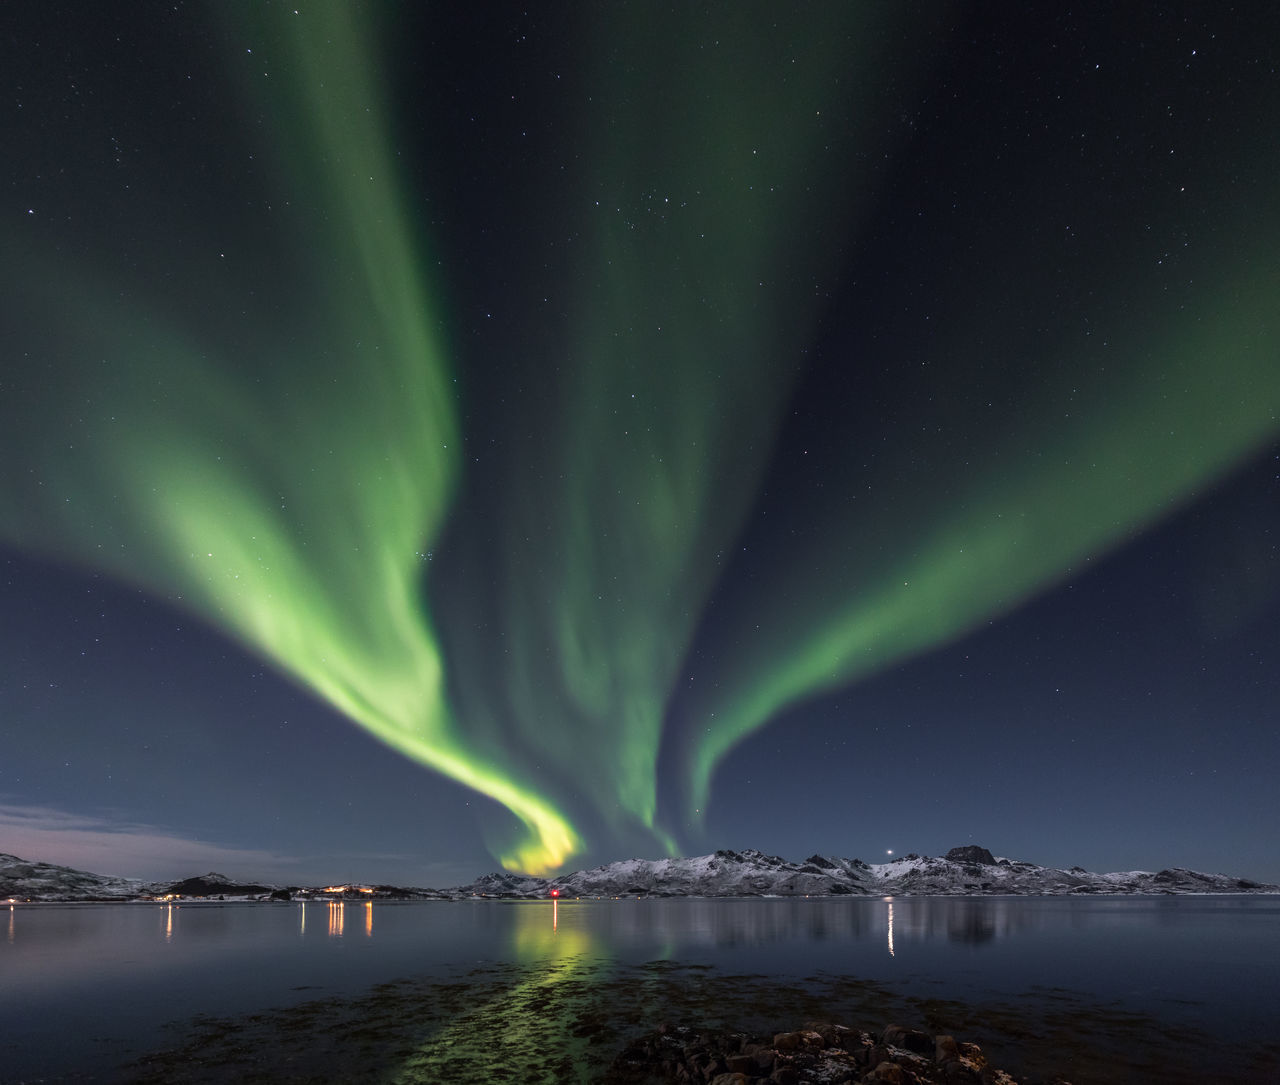 Aurora Borealis Aurora Polaris Awe Beauty Beauty In Nature Dark Dramatic Landscape Green Color Illuminated Landscape Majestic Natural Phenomenon Night Northern Lights Norway Outdoors Polar Climate Scenics Sky Space Space And Astronomy Star - Space Vesterålen Water Winter